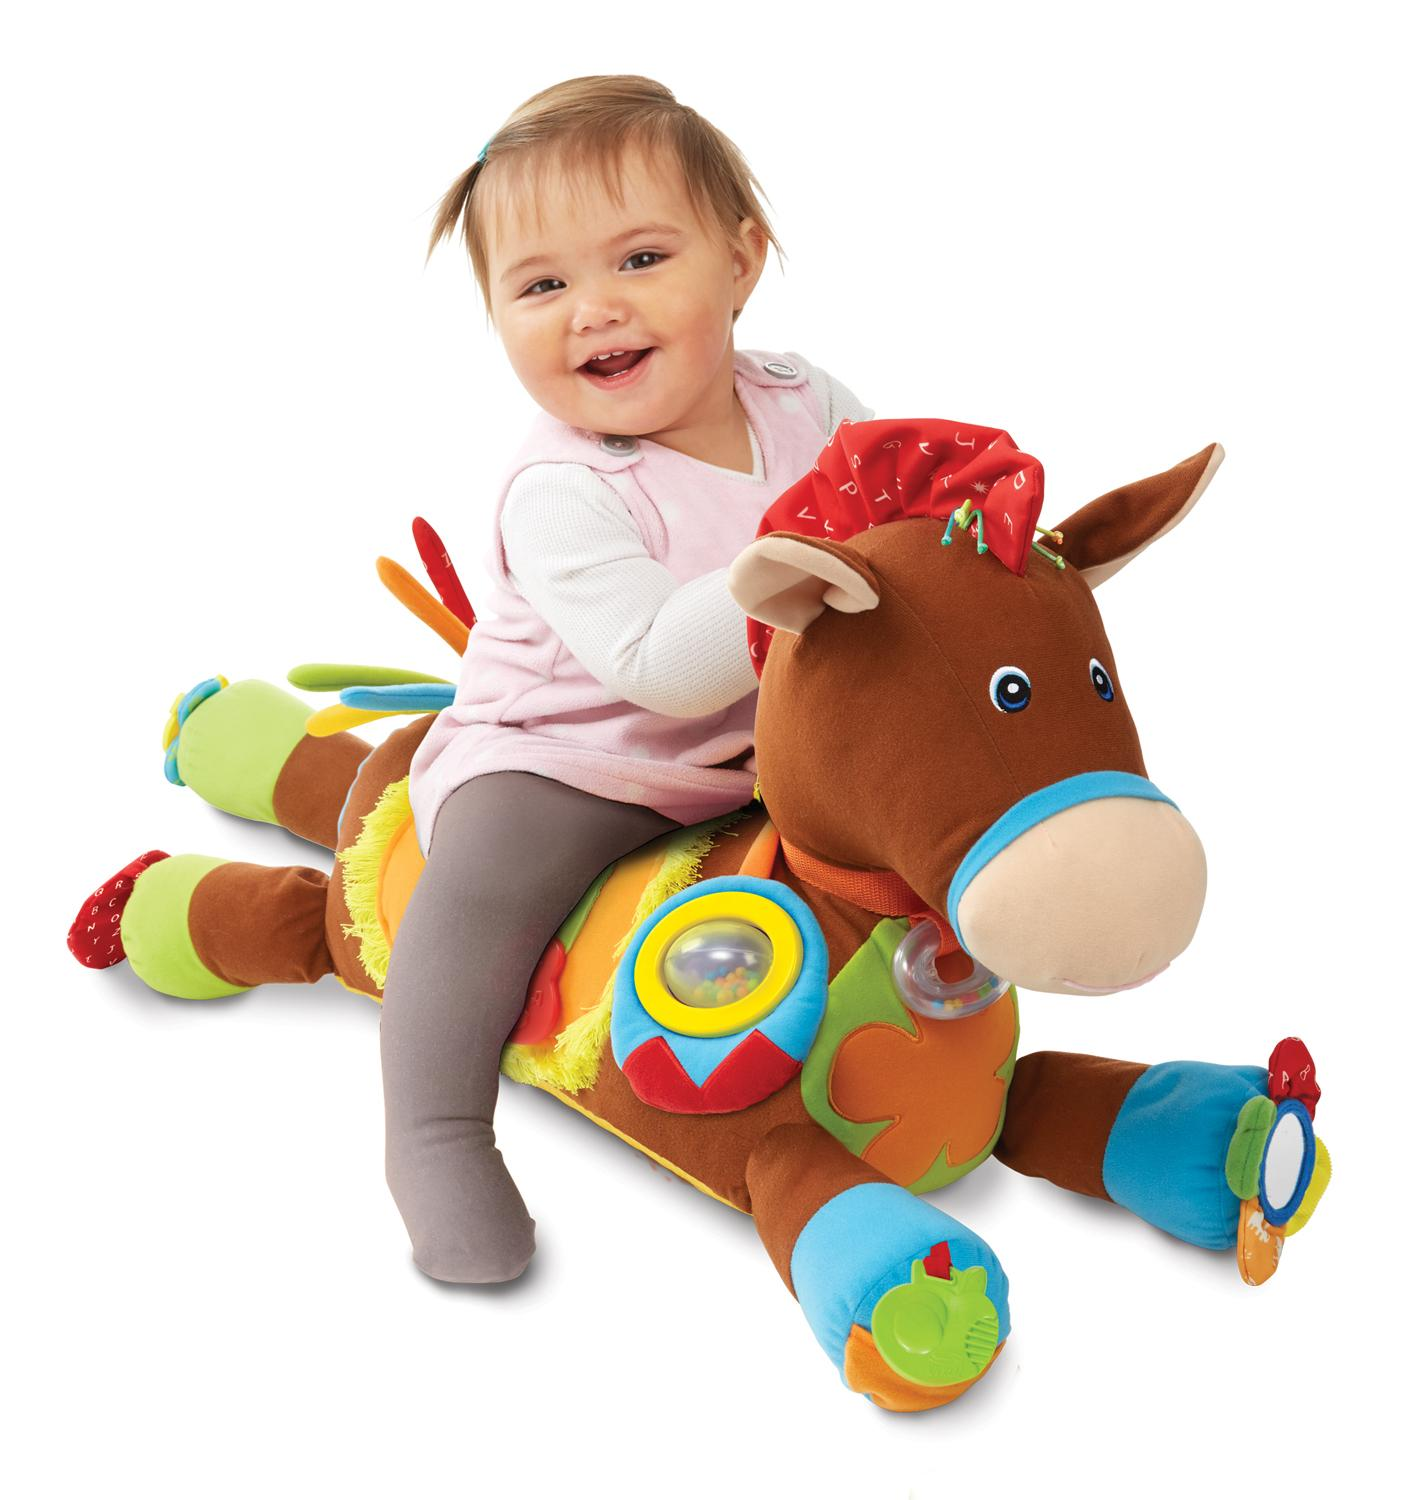 Amazon Melissa & Doug Giddy Up and Play Baby Activity Toy